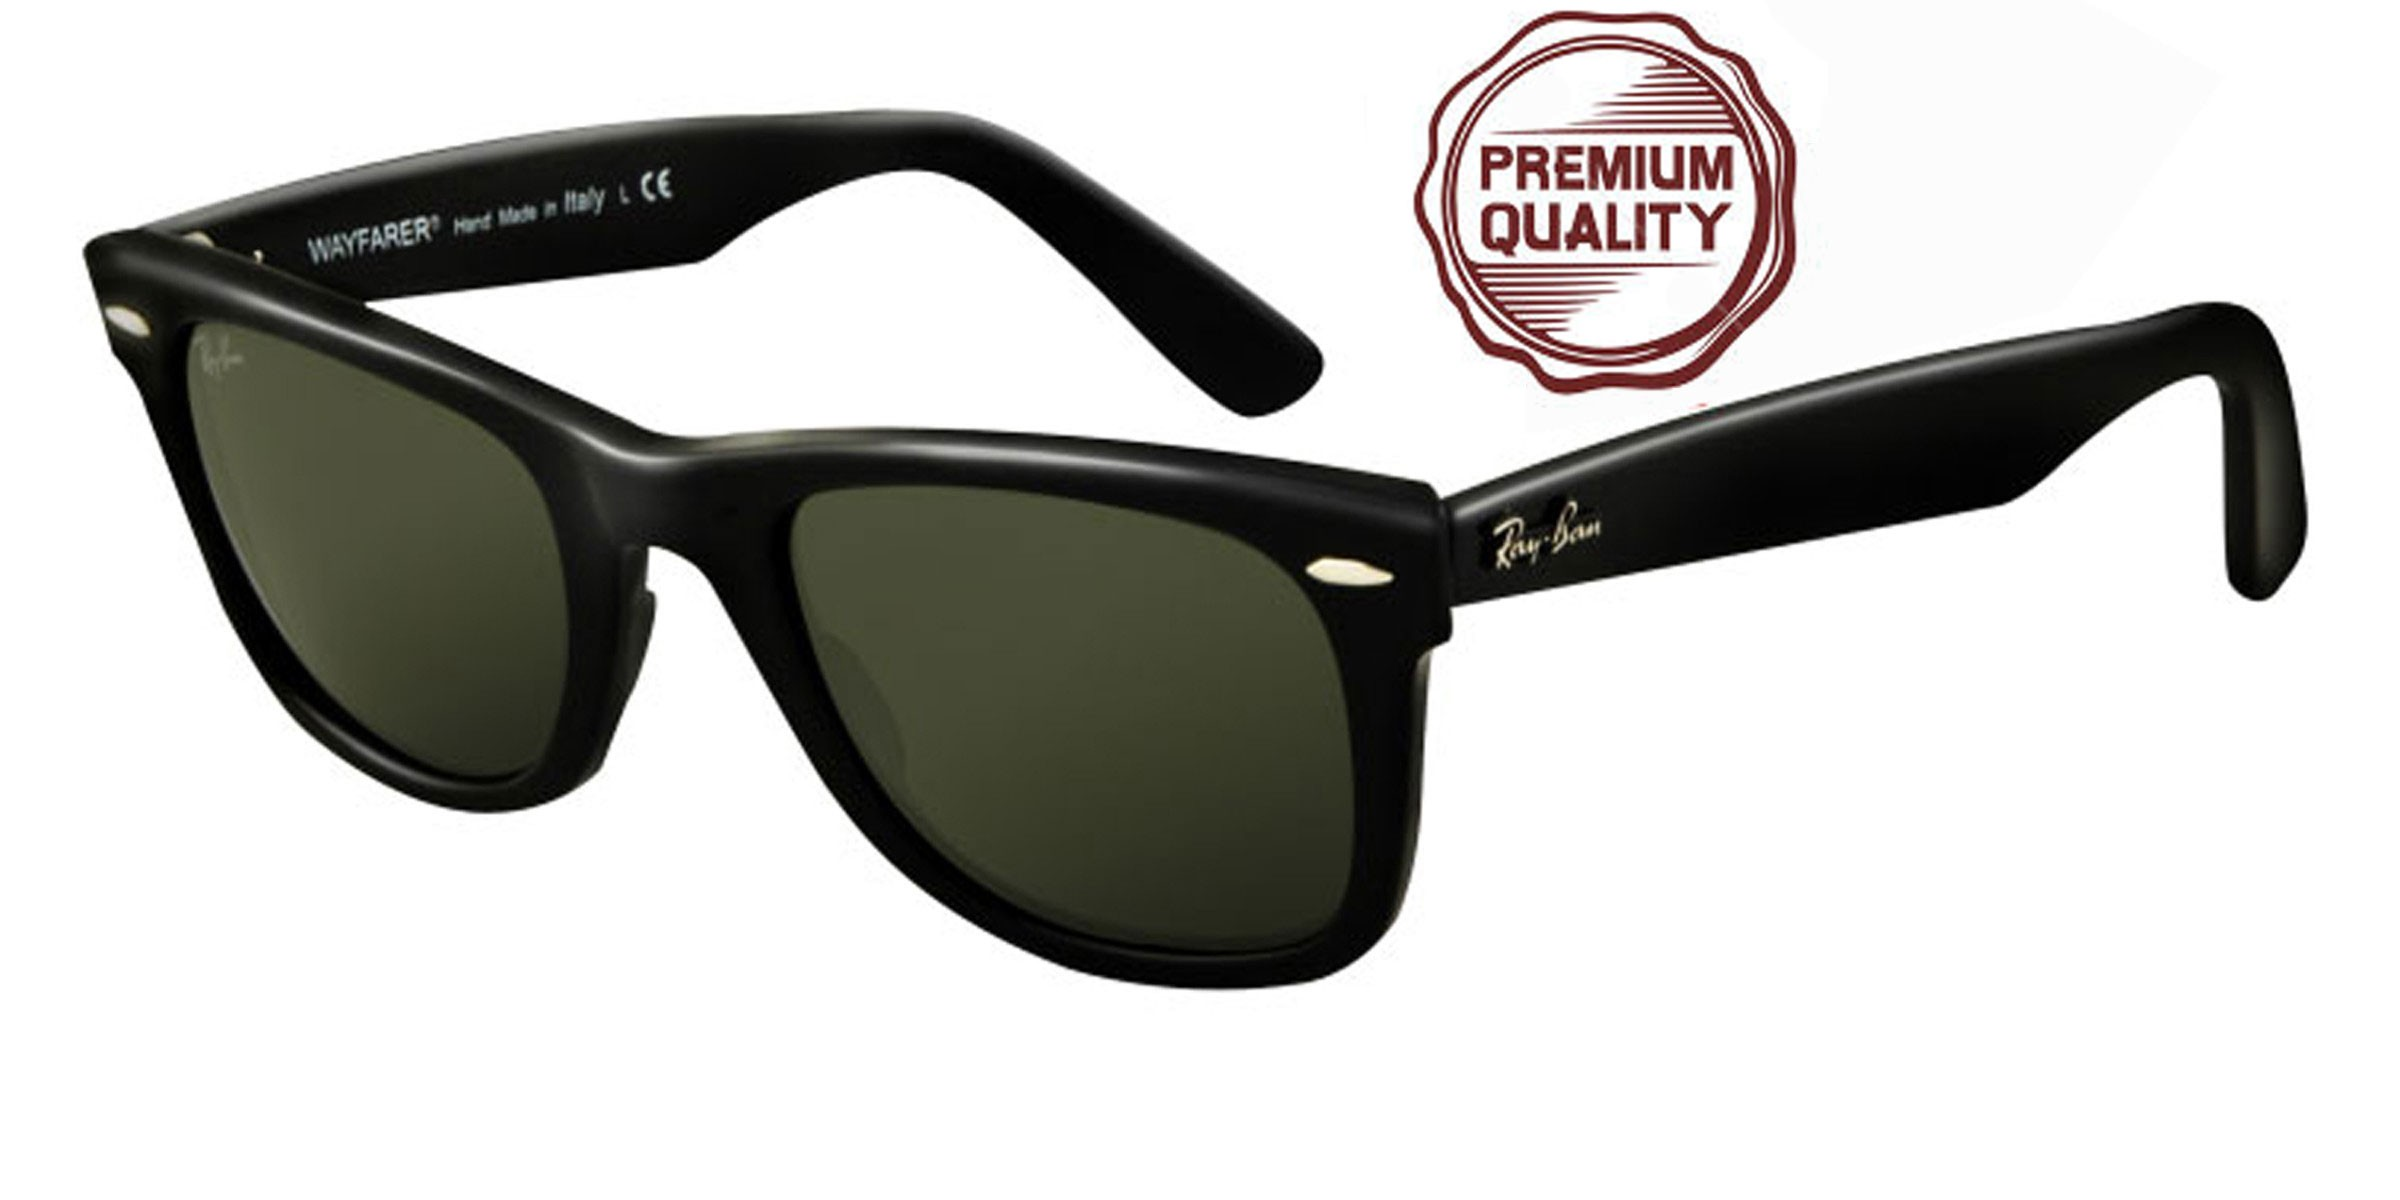 ca372624994 Price Of Ray Ban Sunglasses « One More Soul